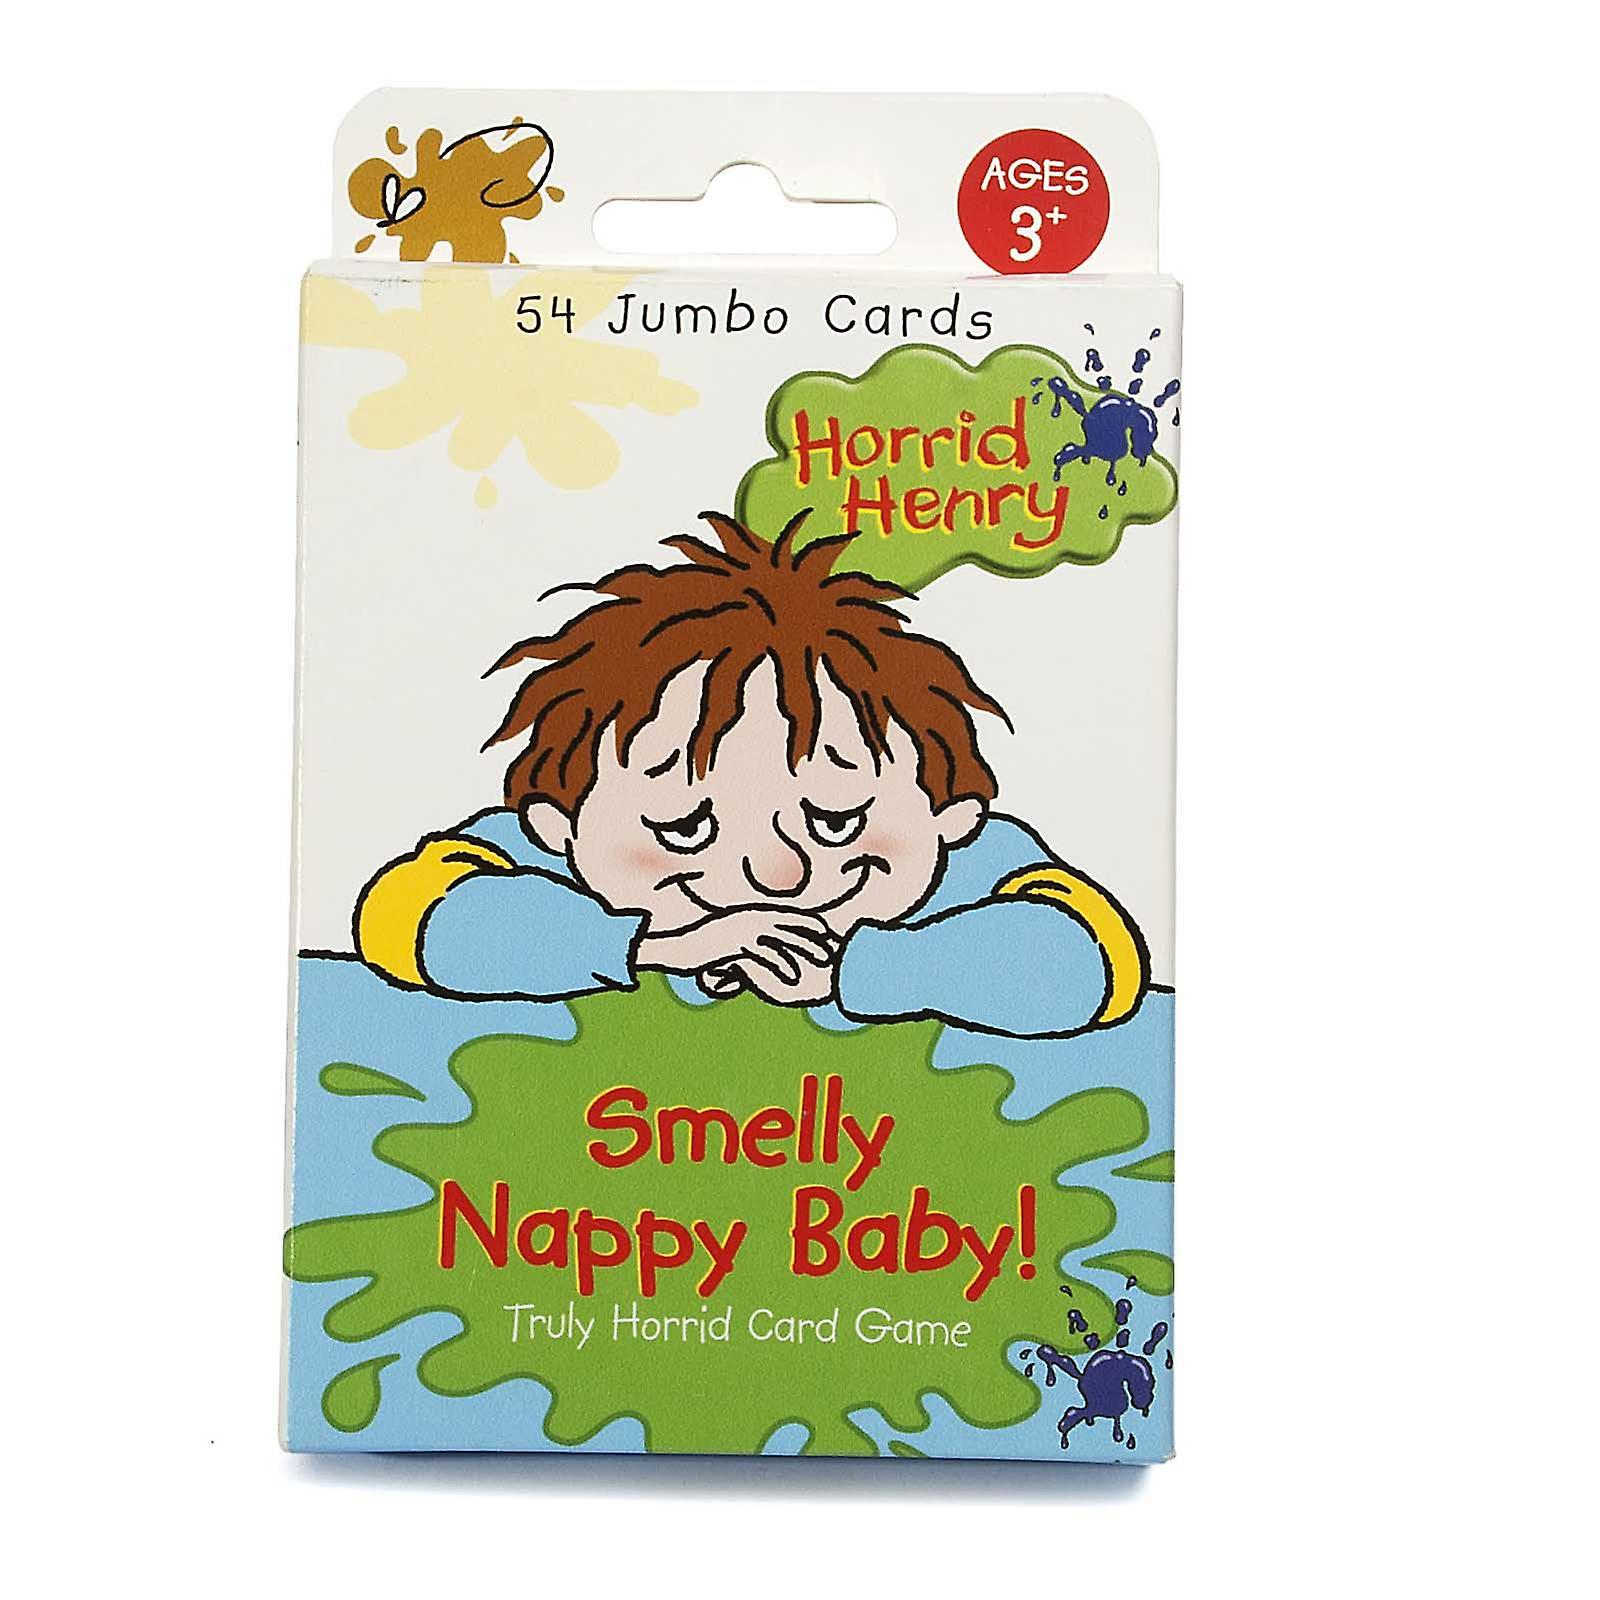 Horrid Henry Card Game Smelly Nappy Baby! Truly Horrid Age 3+